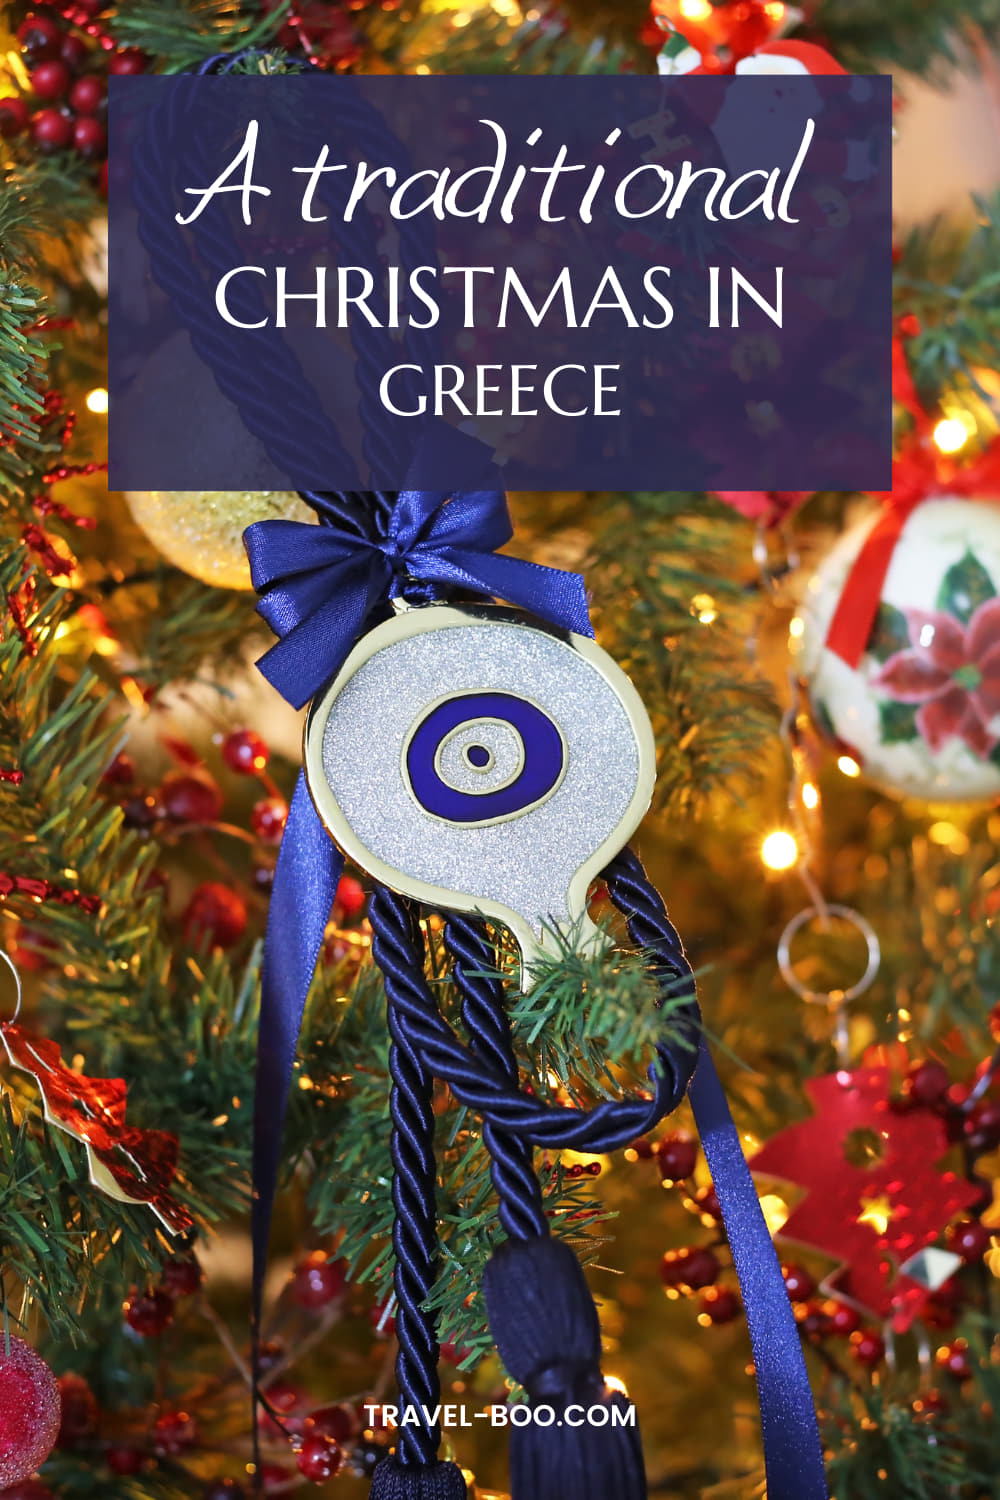 Christmas in Greece - How to Experience a Traditional Greek Christmas in Greece! Greece Travel, Christmas in Greece, Greece Travel Tips, Greece Travel Itinerary, Christmas in Athens, Christmas in Thessaloniki!